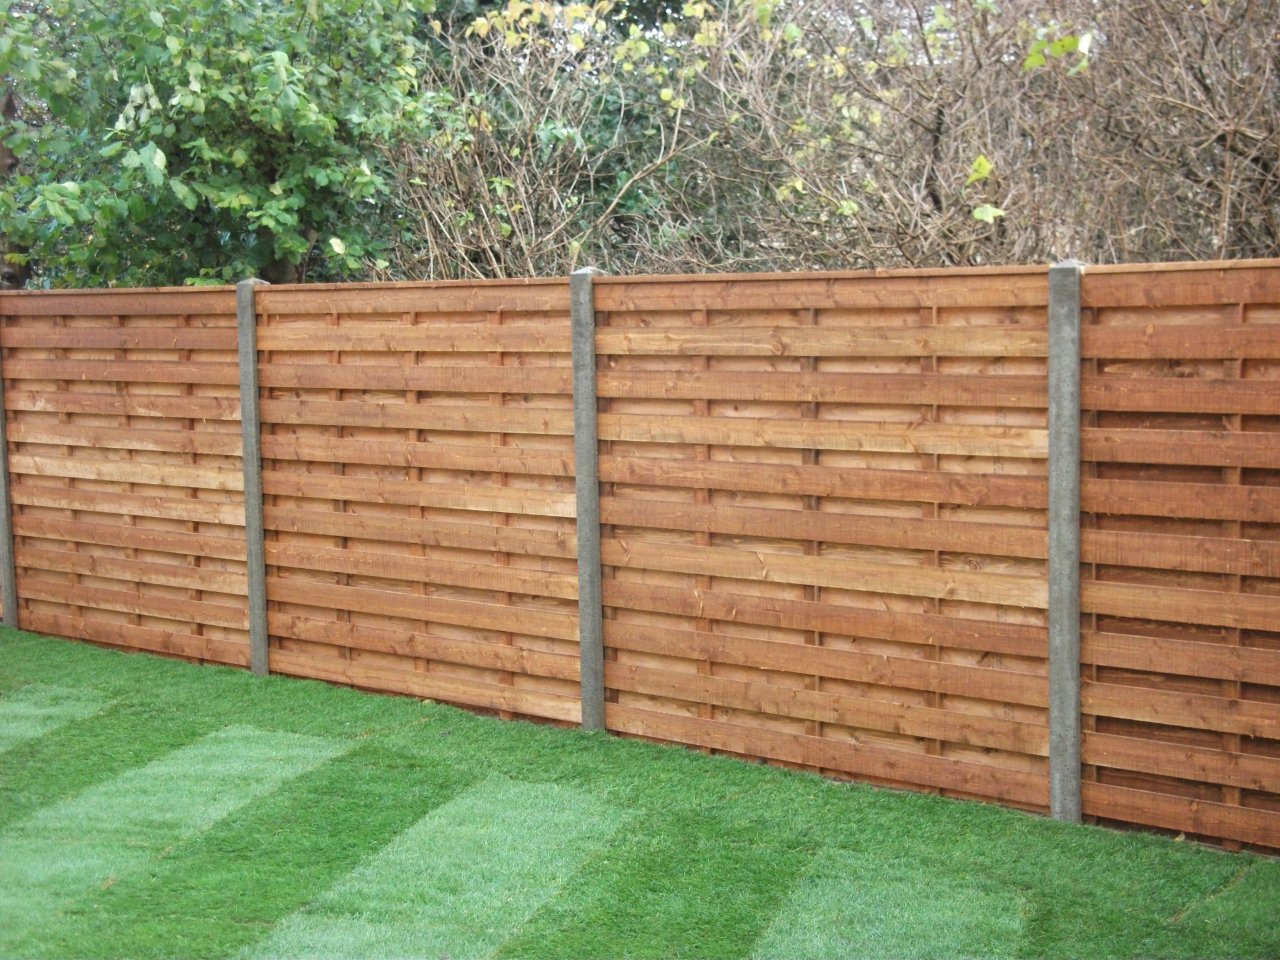 Maintaining your Wooden Fence - Harlow Fencing